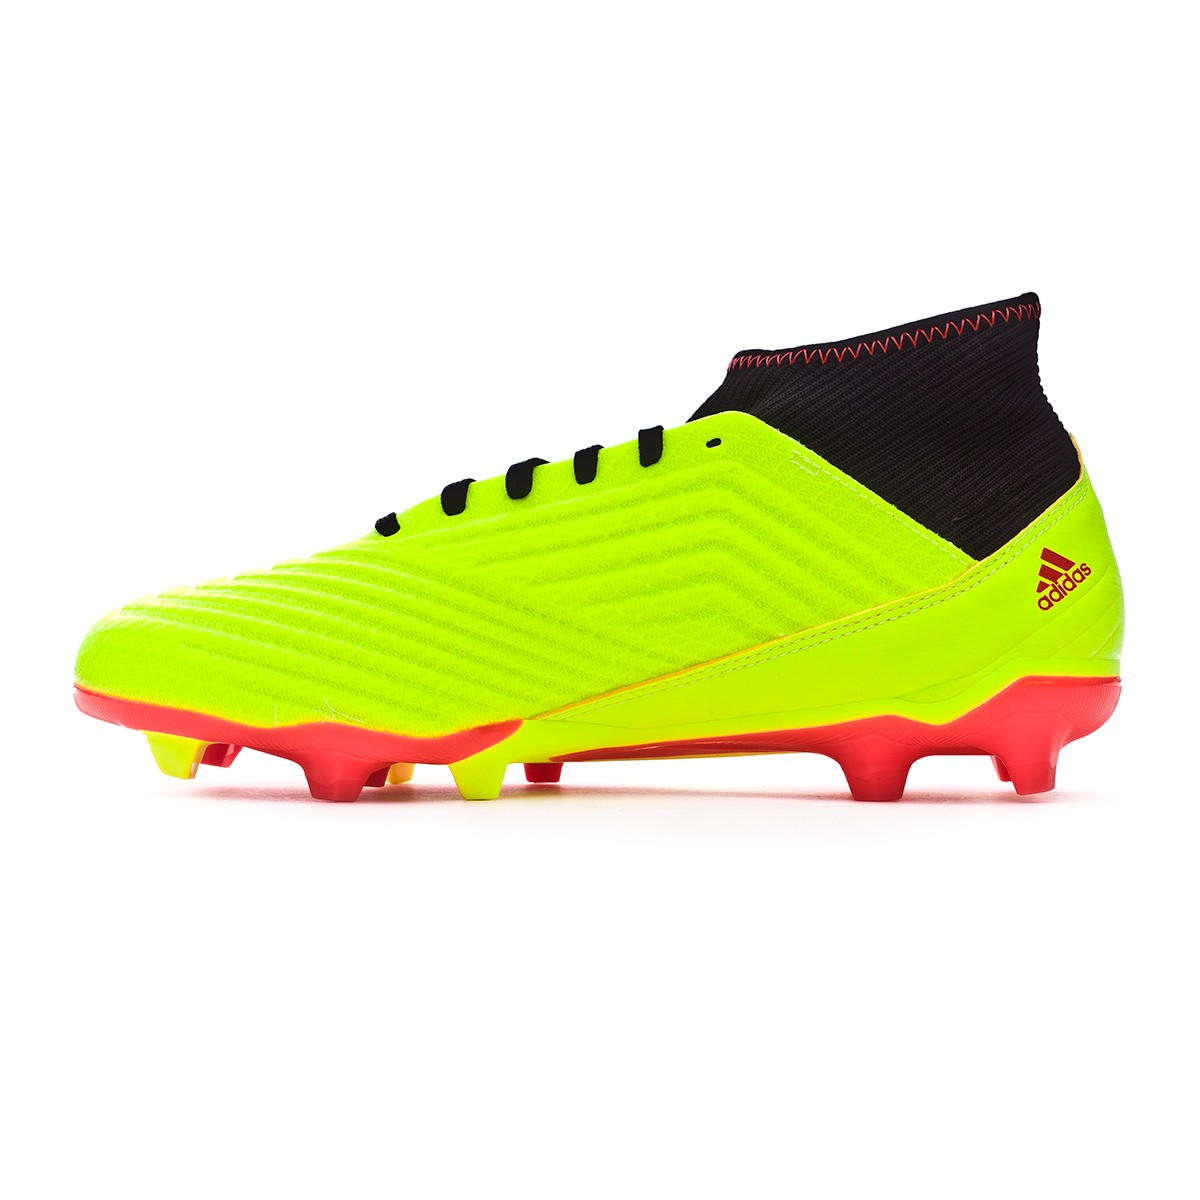 1ac04abfd3c Football Boots adidas Predator 18.3 FG Solar yellow-Black-Solar red -  Football store Fútbol Emotion